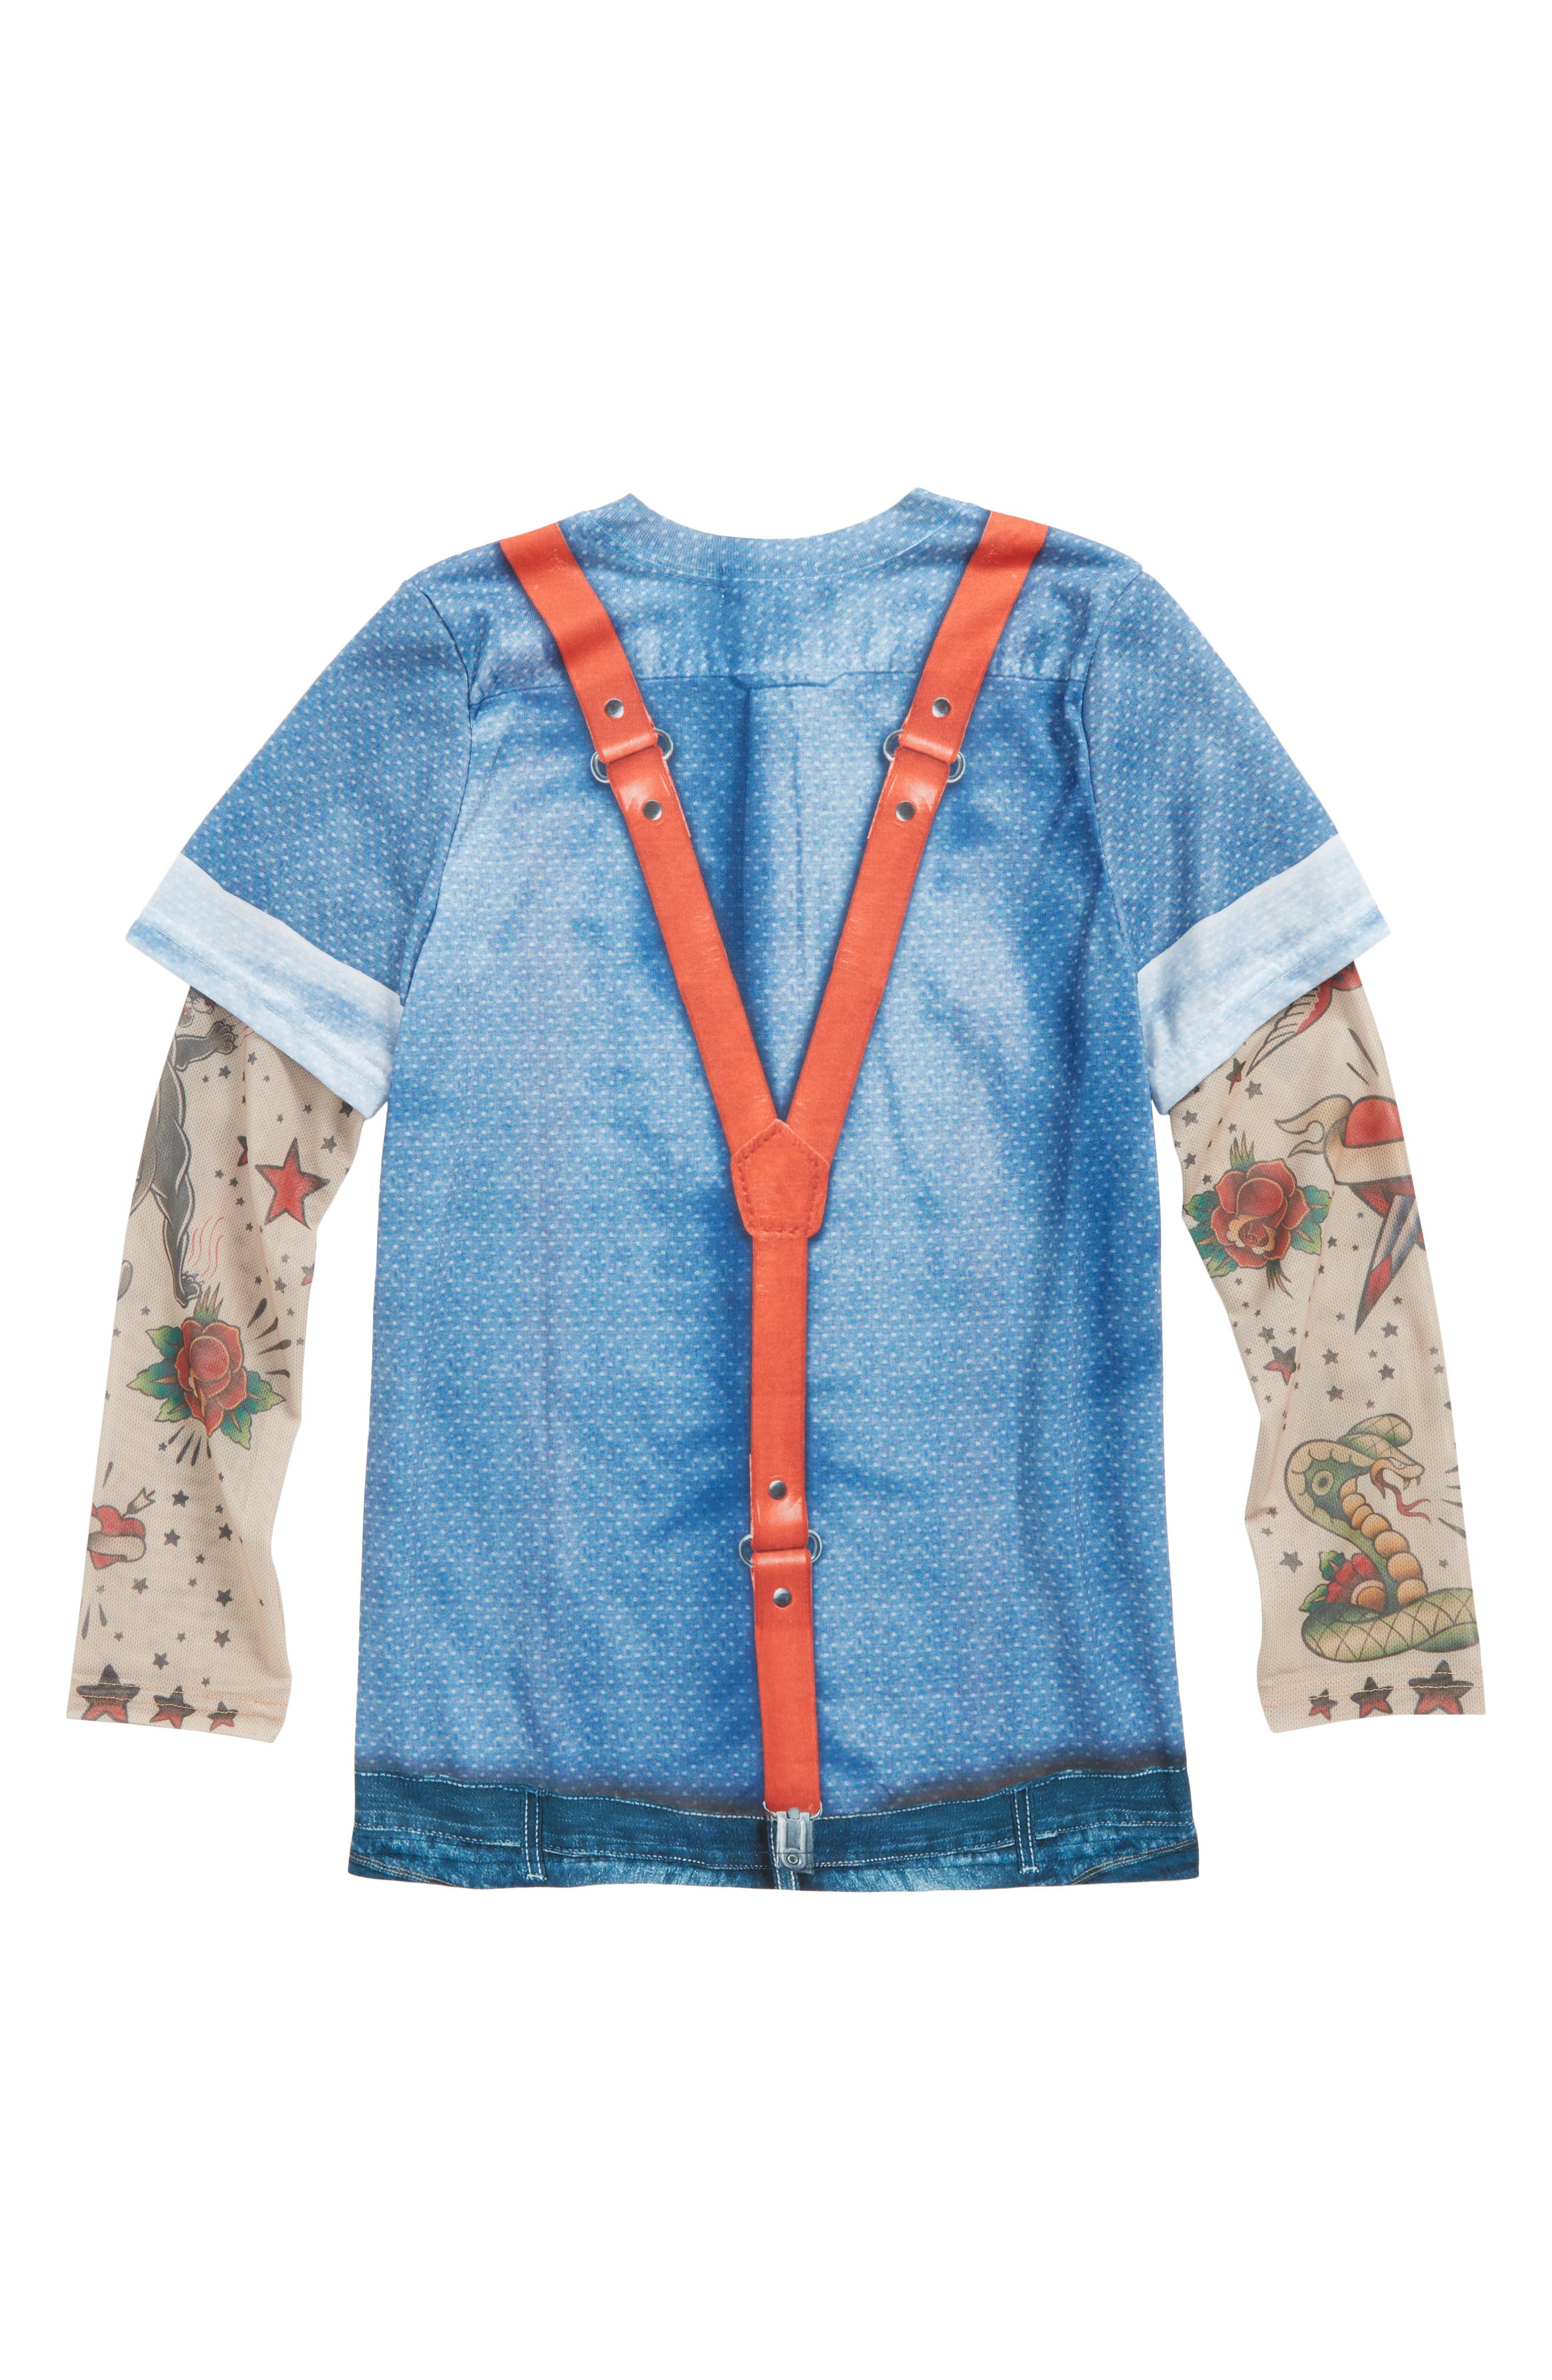 Hipster Tie & Suspenders T-Shirt with Tattoo Print Sleeves,                             Alternate thumbnail 3, color,                             Blue/ Red